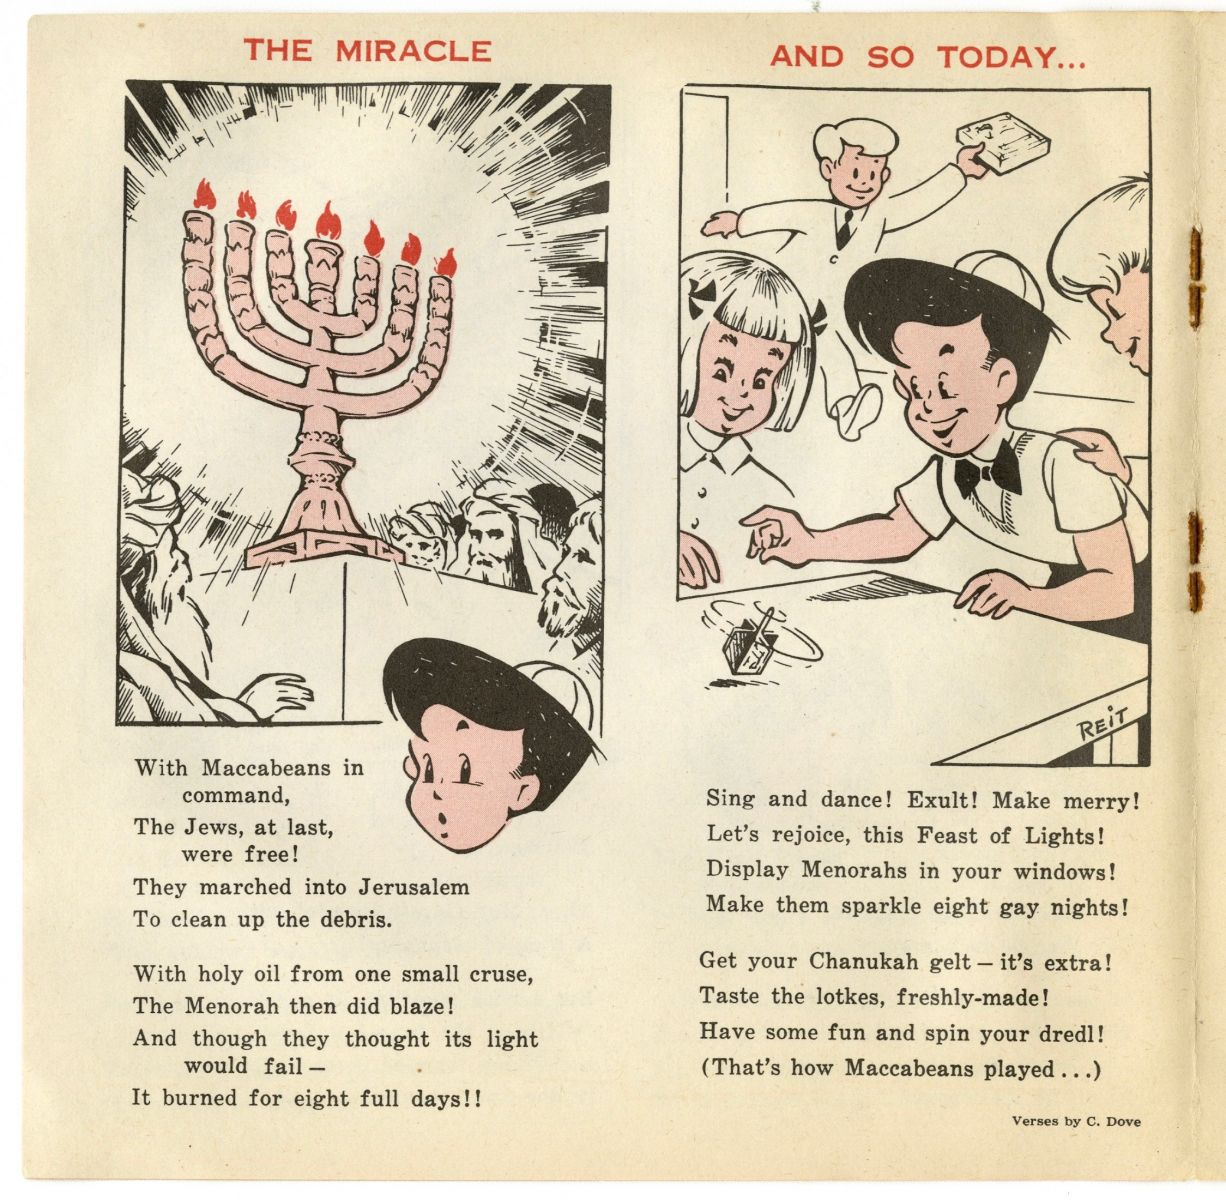 "On the left side of the page is ""The Miracle,"" depicting in words and illustrations the Maccabeans' menorah burning for 8 days. The right side of the page reads ""And so today..."" and features three children celebrating Hanukkah by spinning a dreidel."